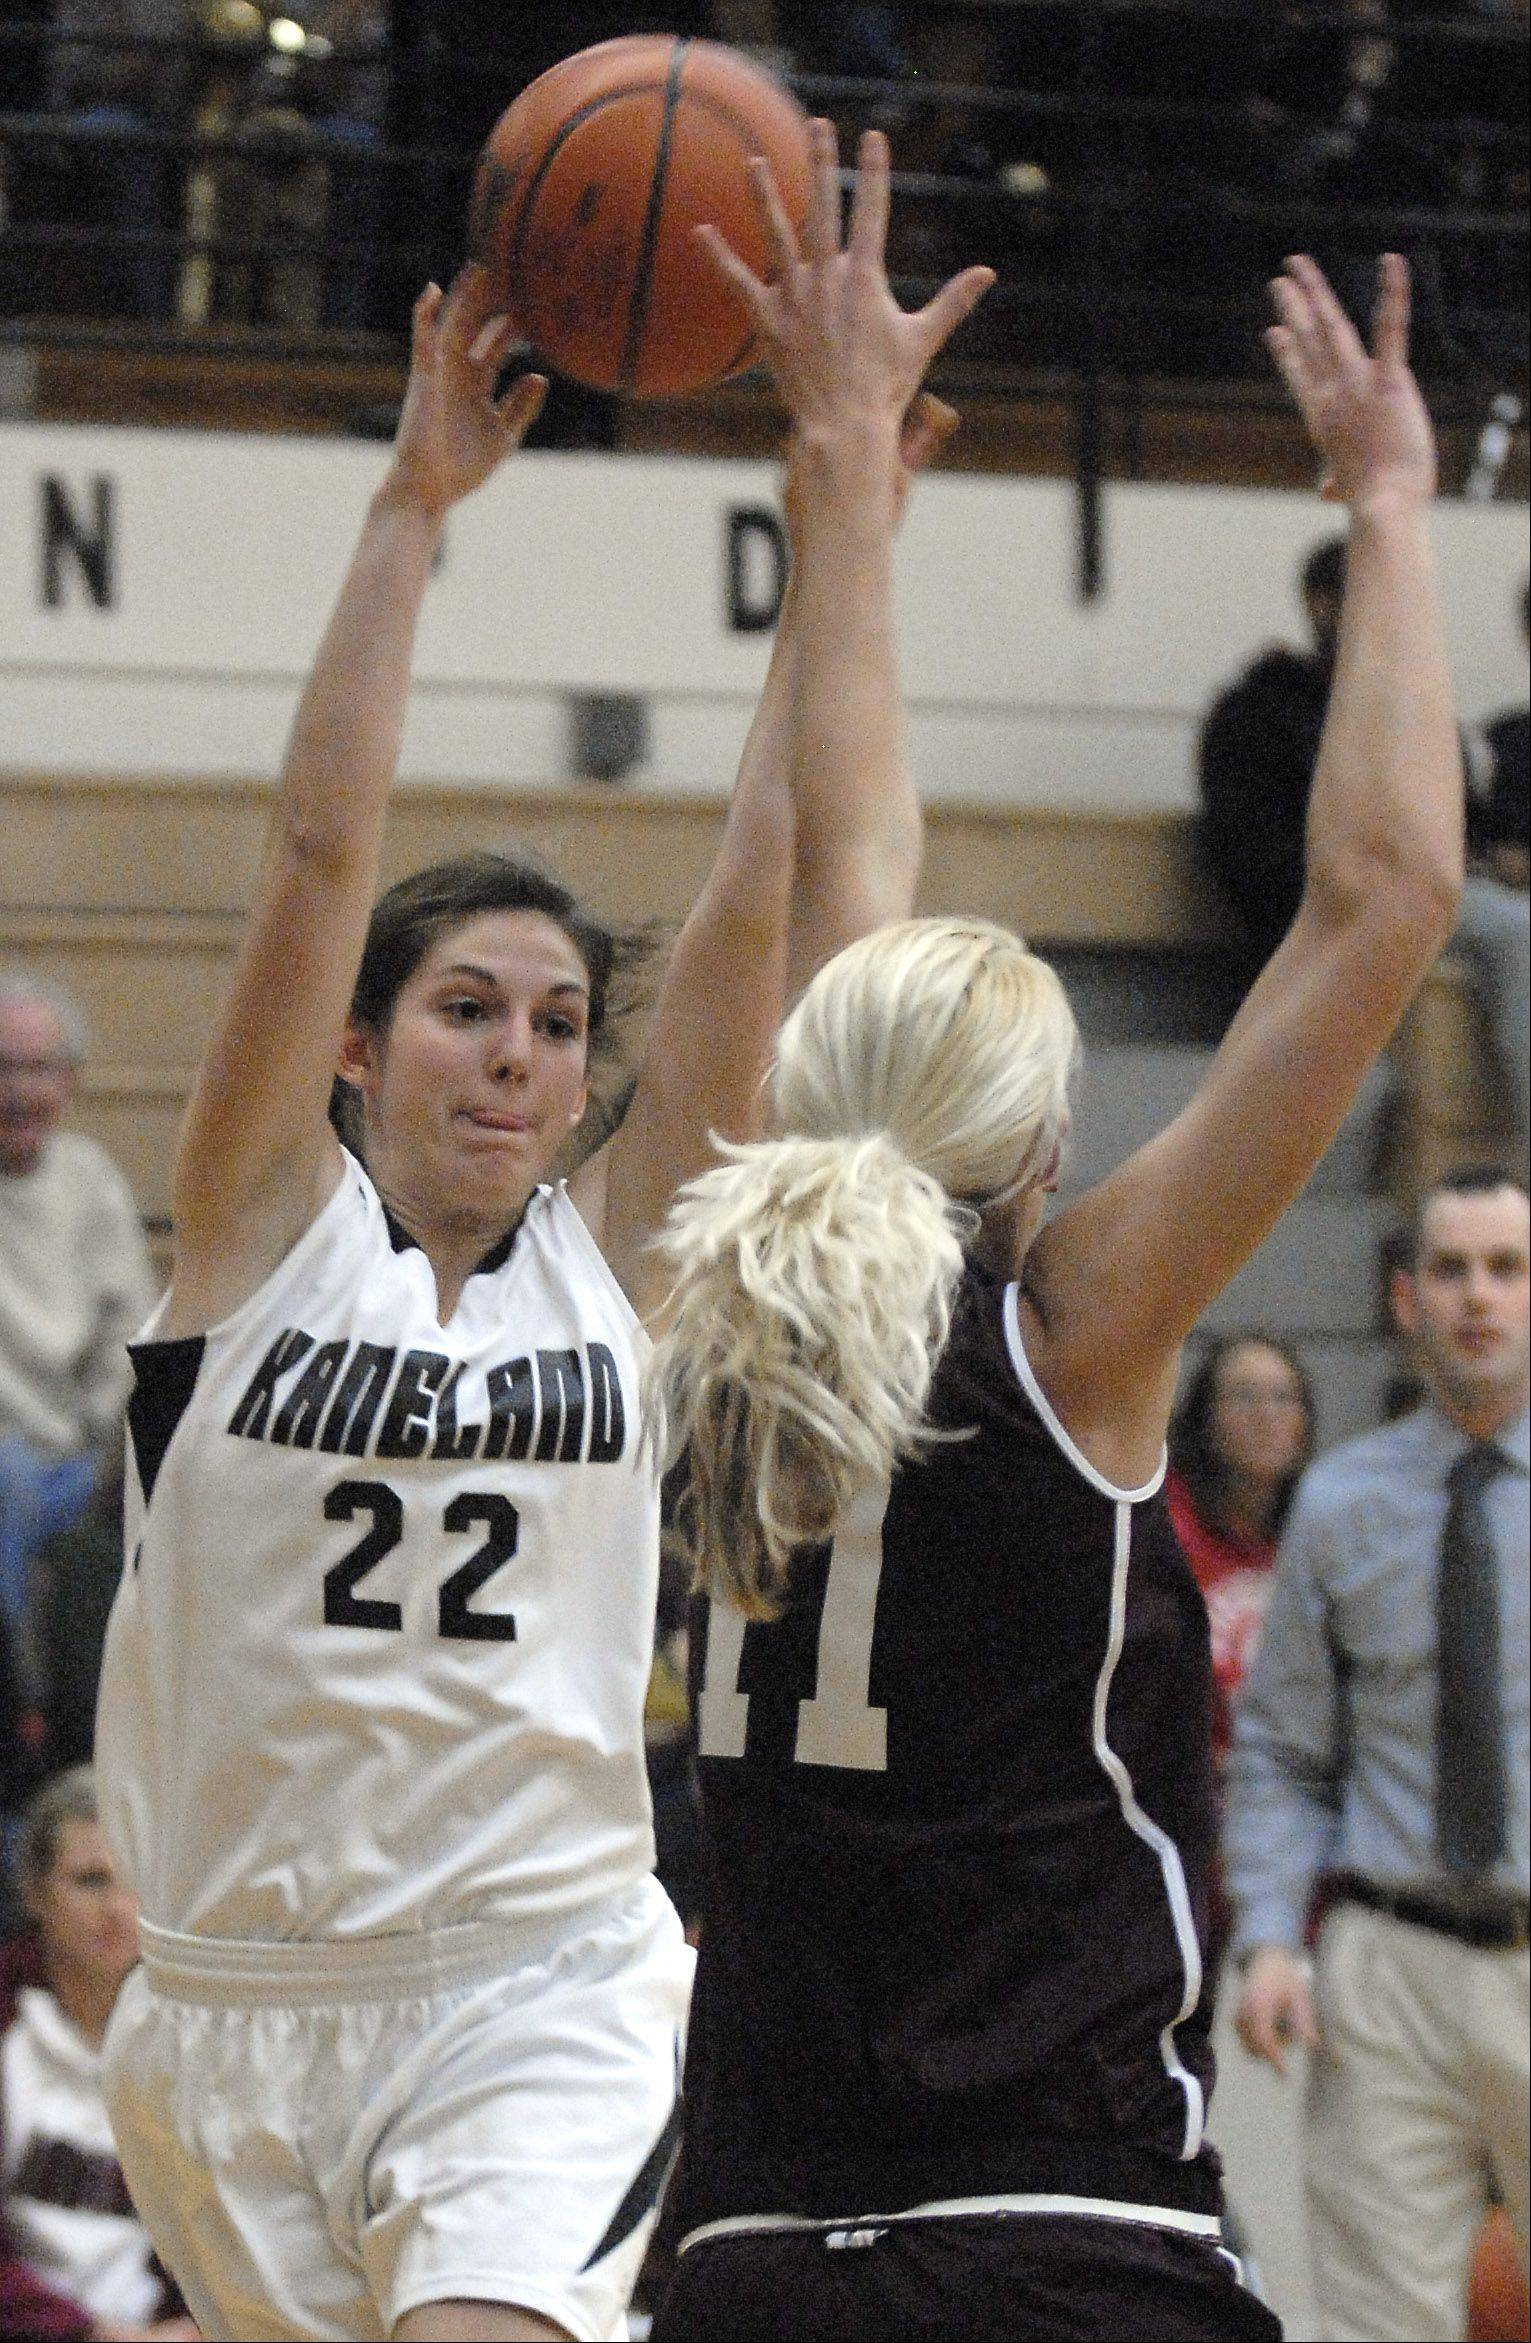 Marengo's Ally Fillmore attempts to block a pass by Kaneland's Brooke Harner in the first quarter.